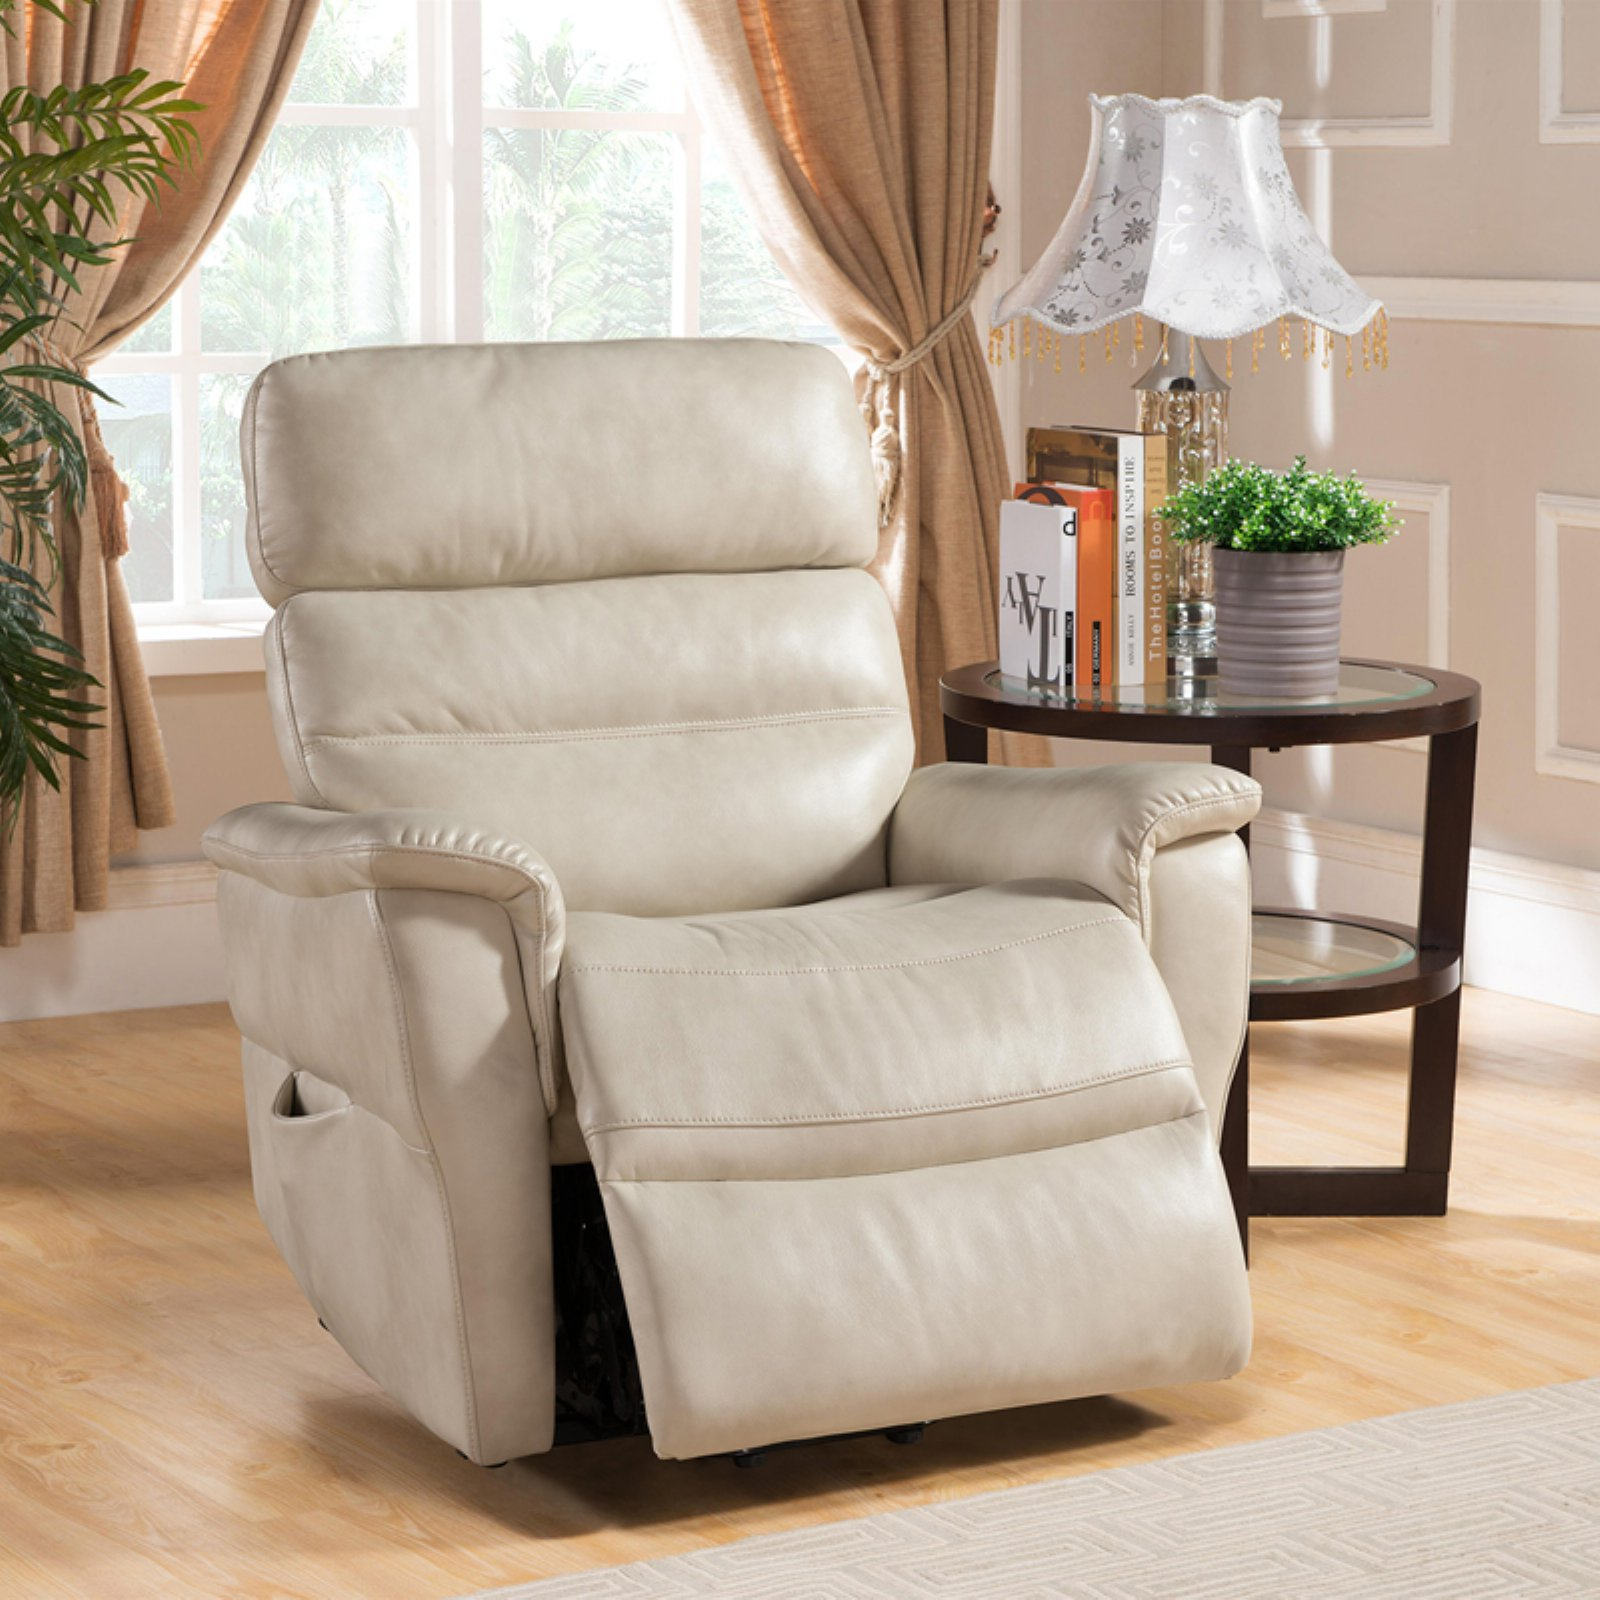 christies home living avery power reclining lift chair